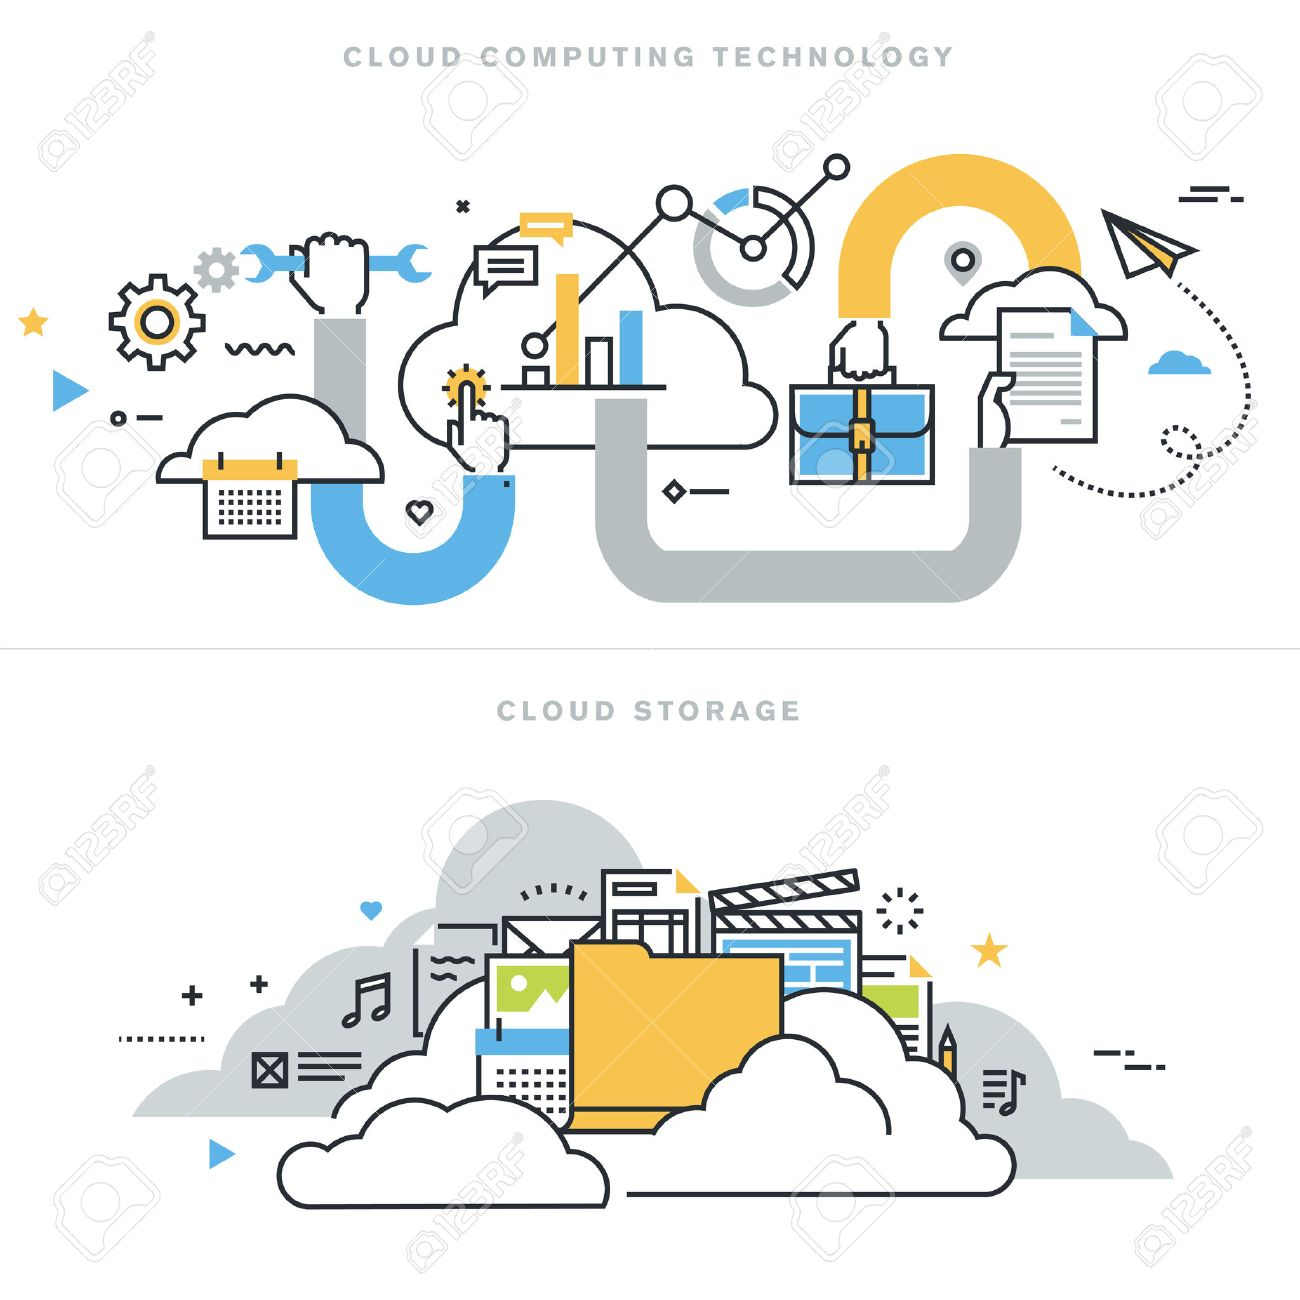 Flat line design vector illustration concepts for cloud computing technology, cloud storage, cloud solutions, security and availability, for website banner and landing page. Stock Vector - 47892791